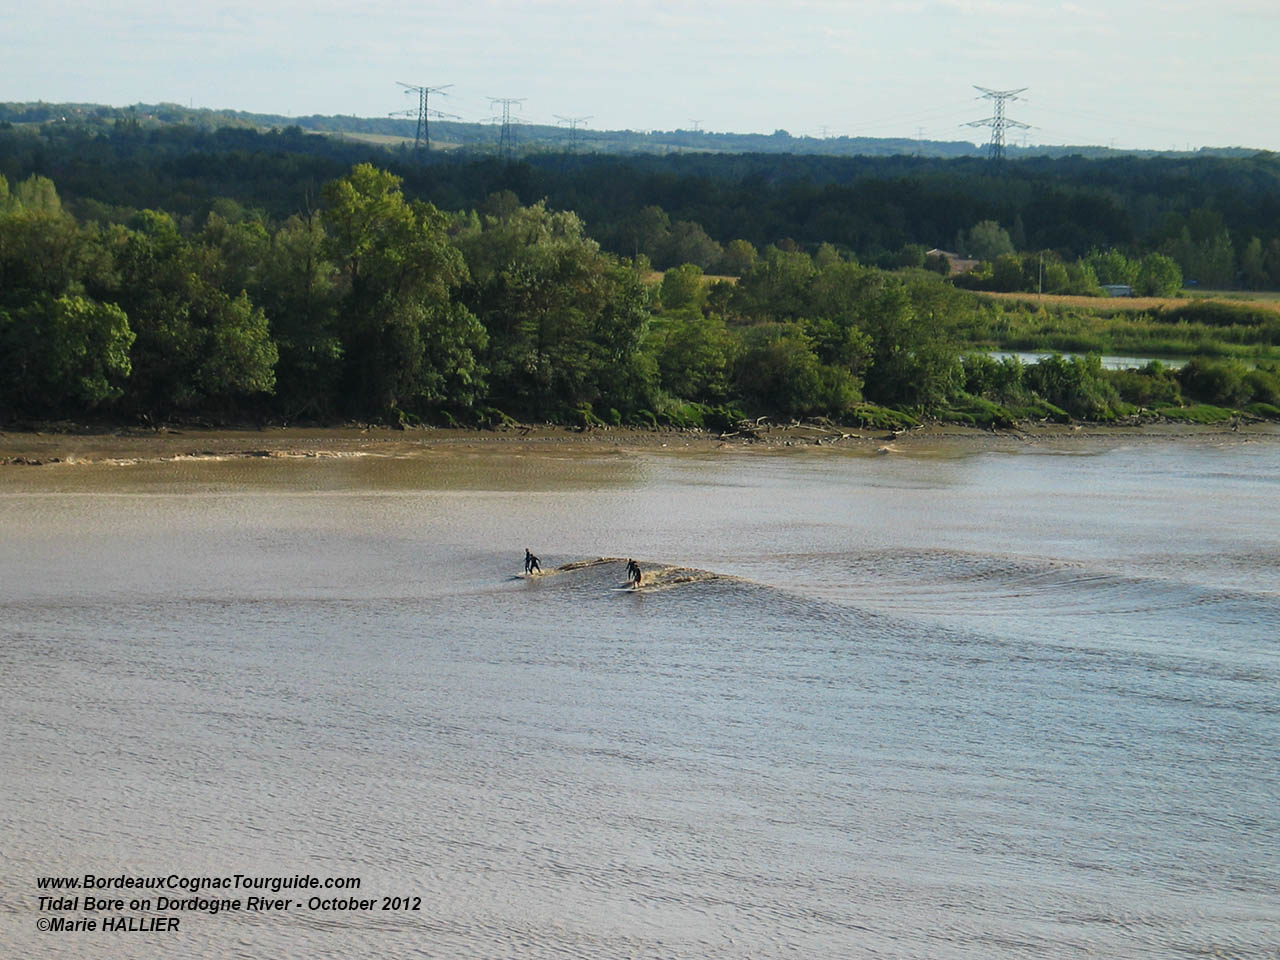 2012-10-01-Happy-Hawaian-travelers-assisting-Dordogne-tidal-Bore2